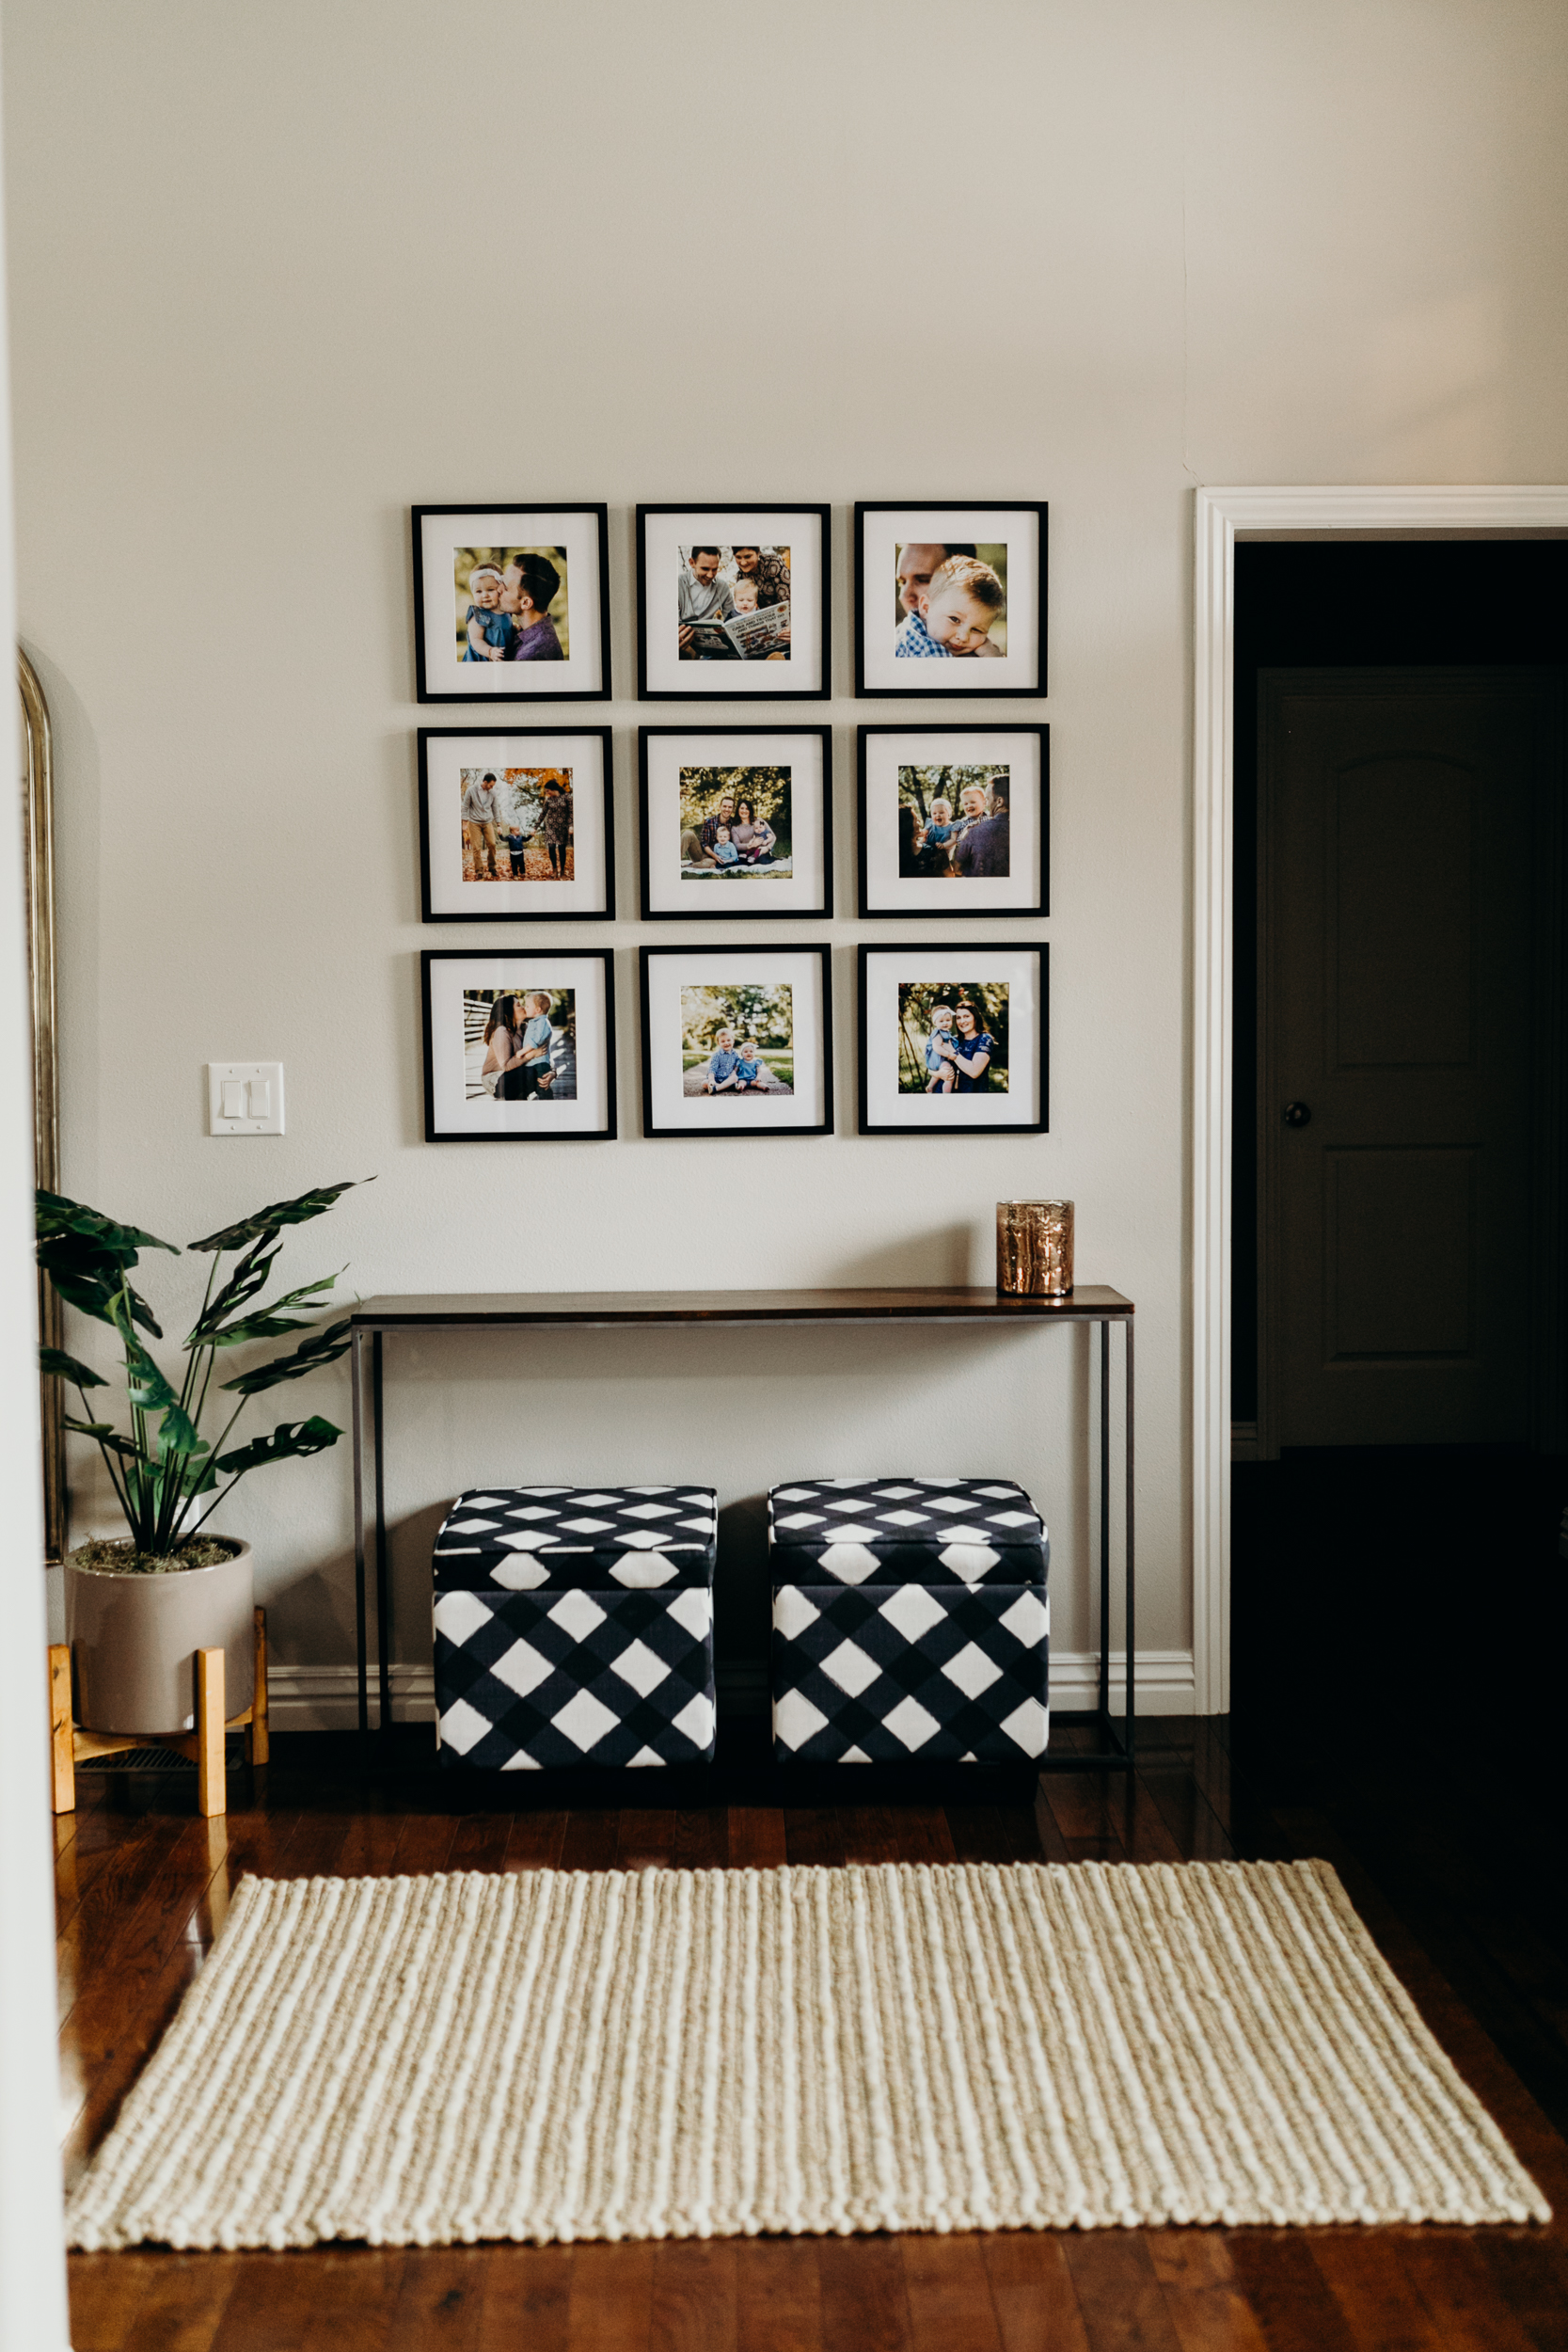 Square picture frames on wall with table and storage bins